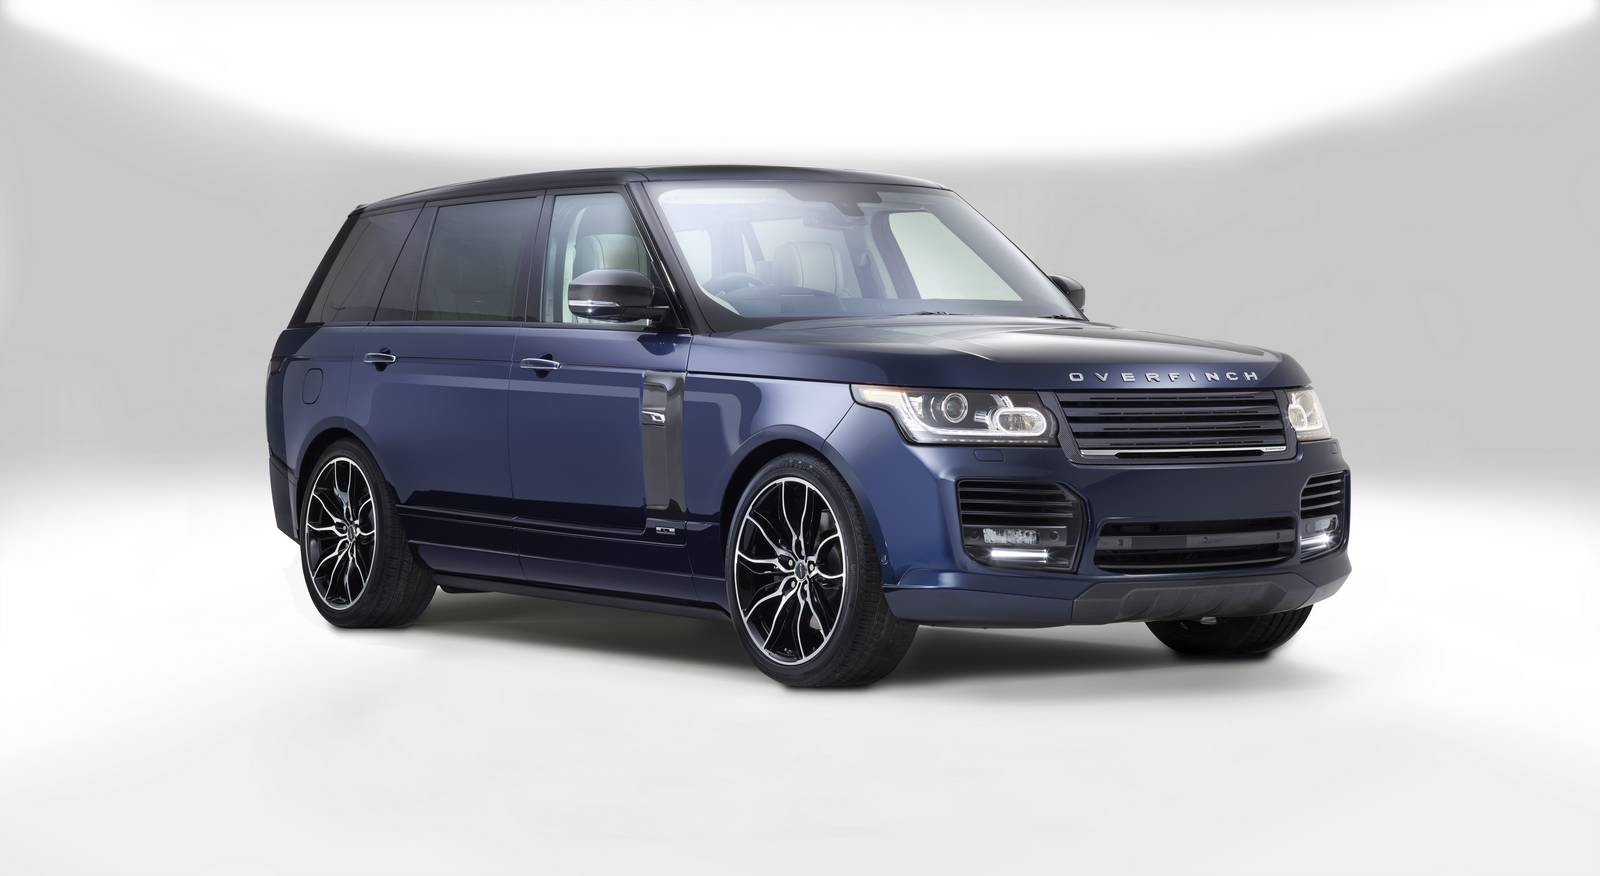 Official 1 Of 1 Overfinch Range Rover London Edition 249 990